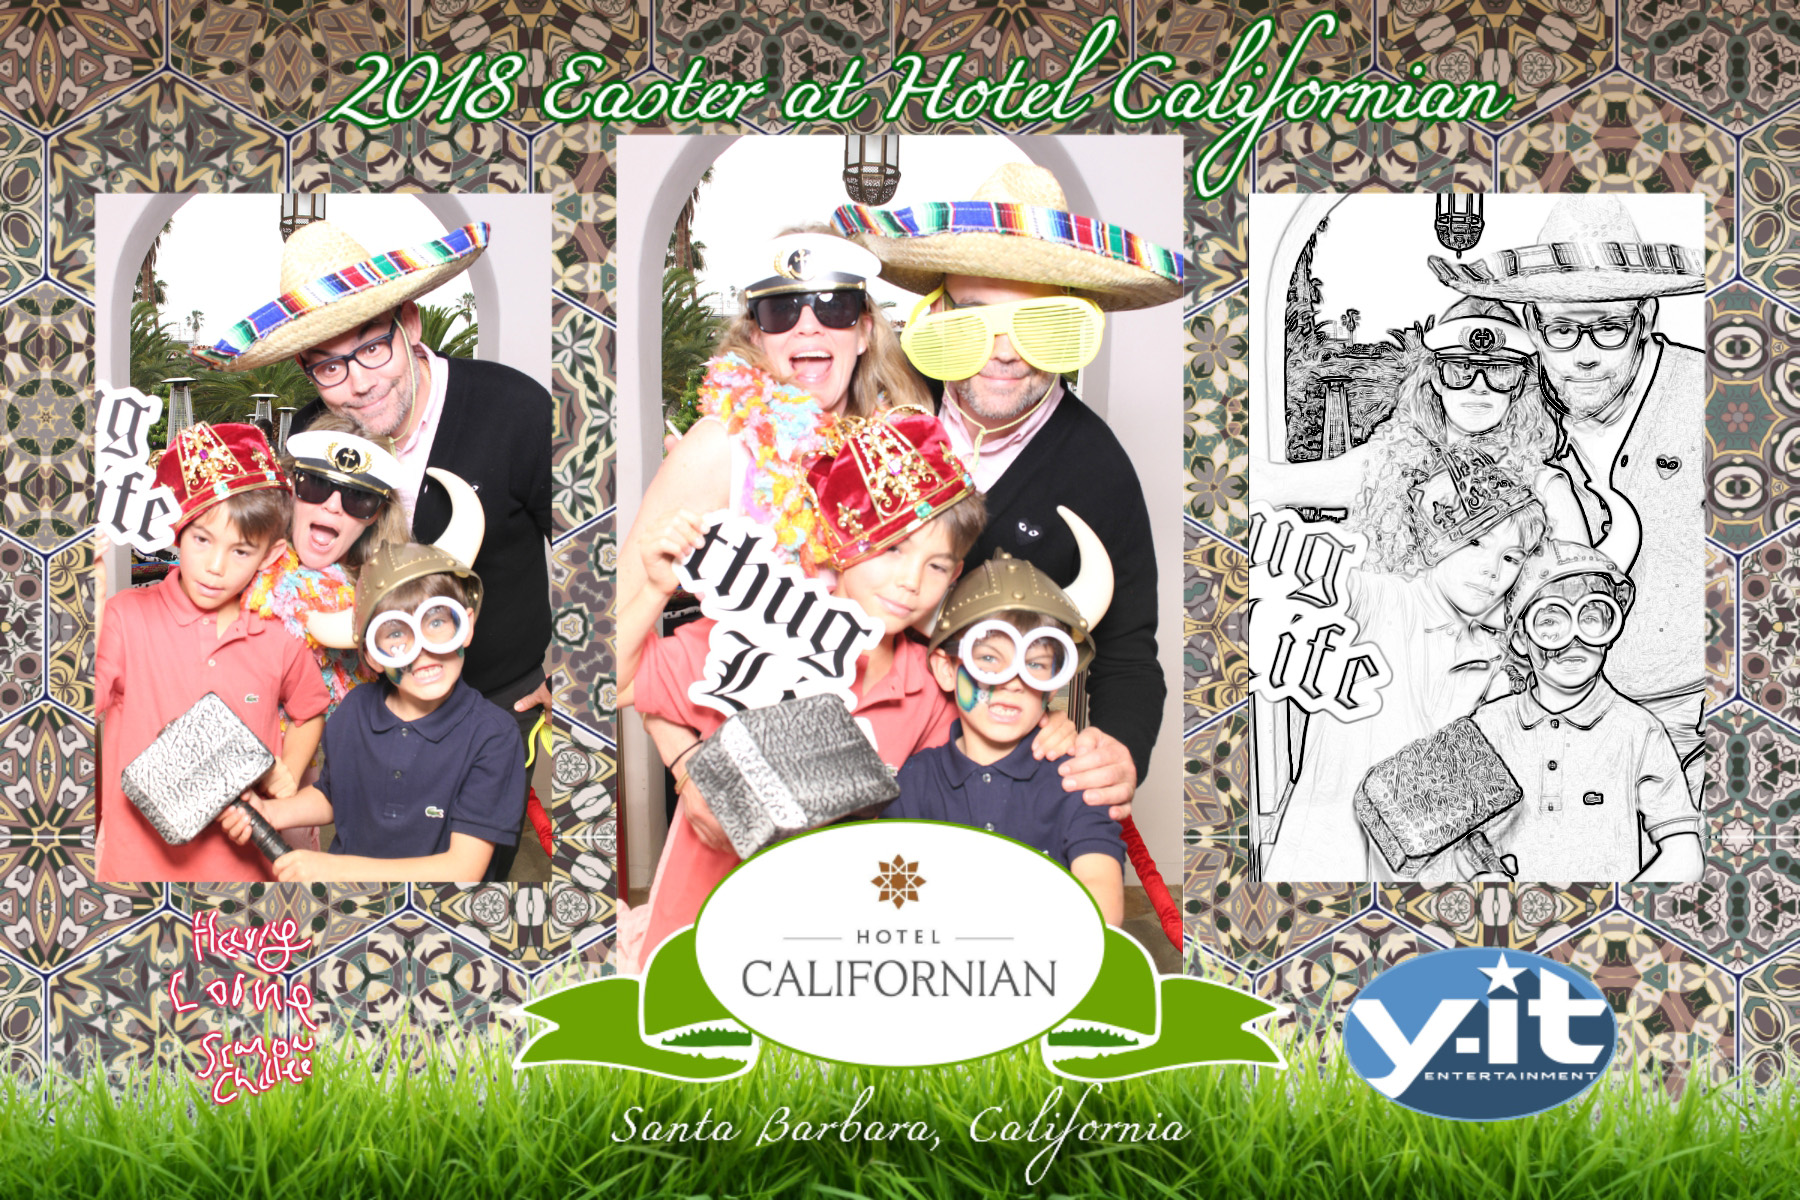 Hotel Californian's Easter Brunch Santa Barbara 2018 Photo booth. www.Yitentertainment.com